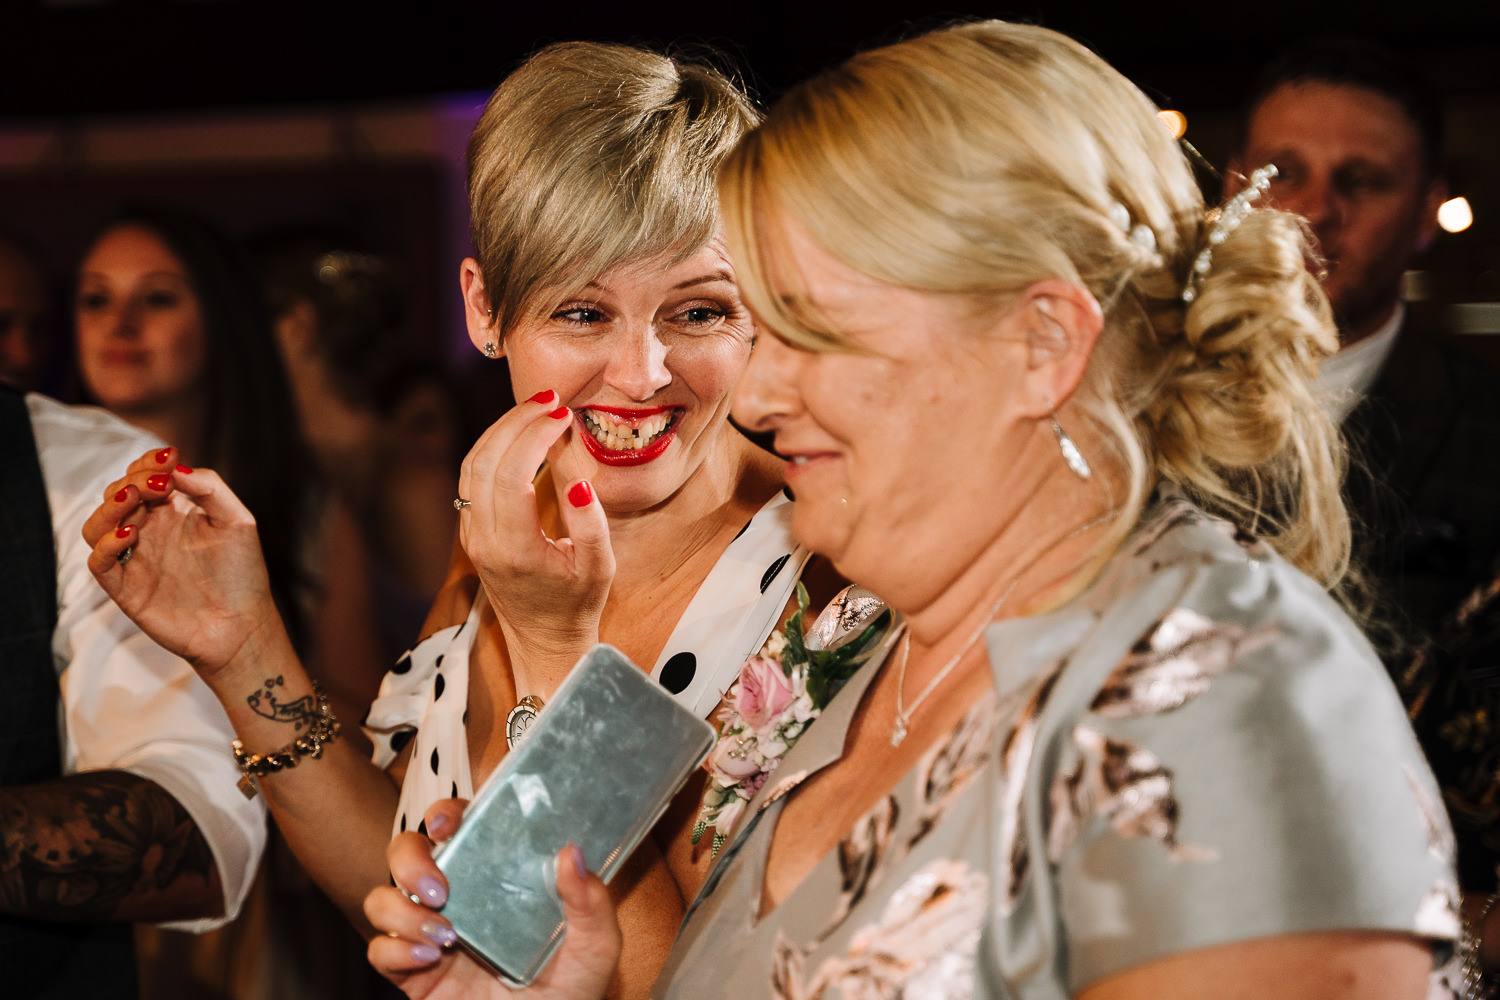 Wedding guests laughing on the dance floor